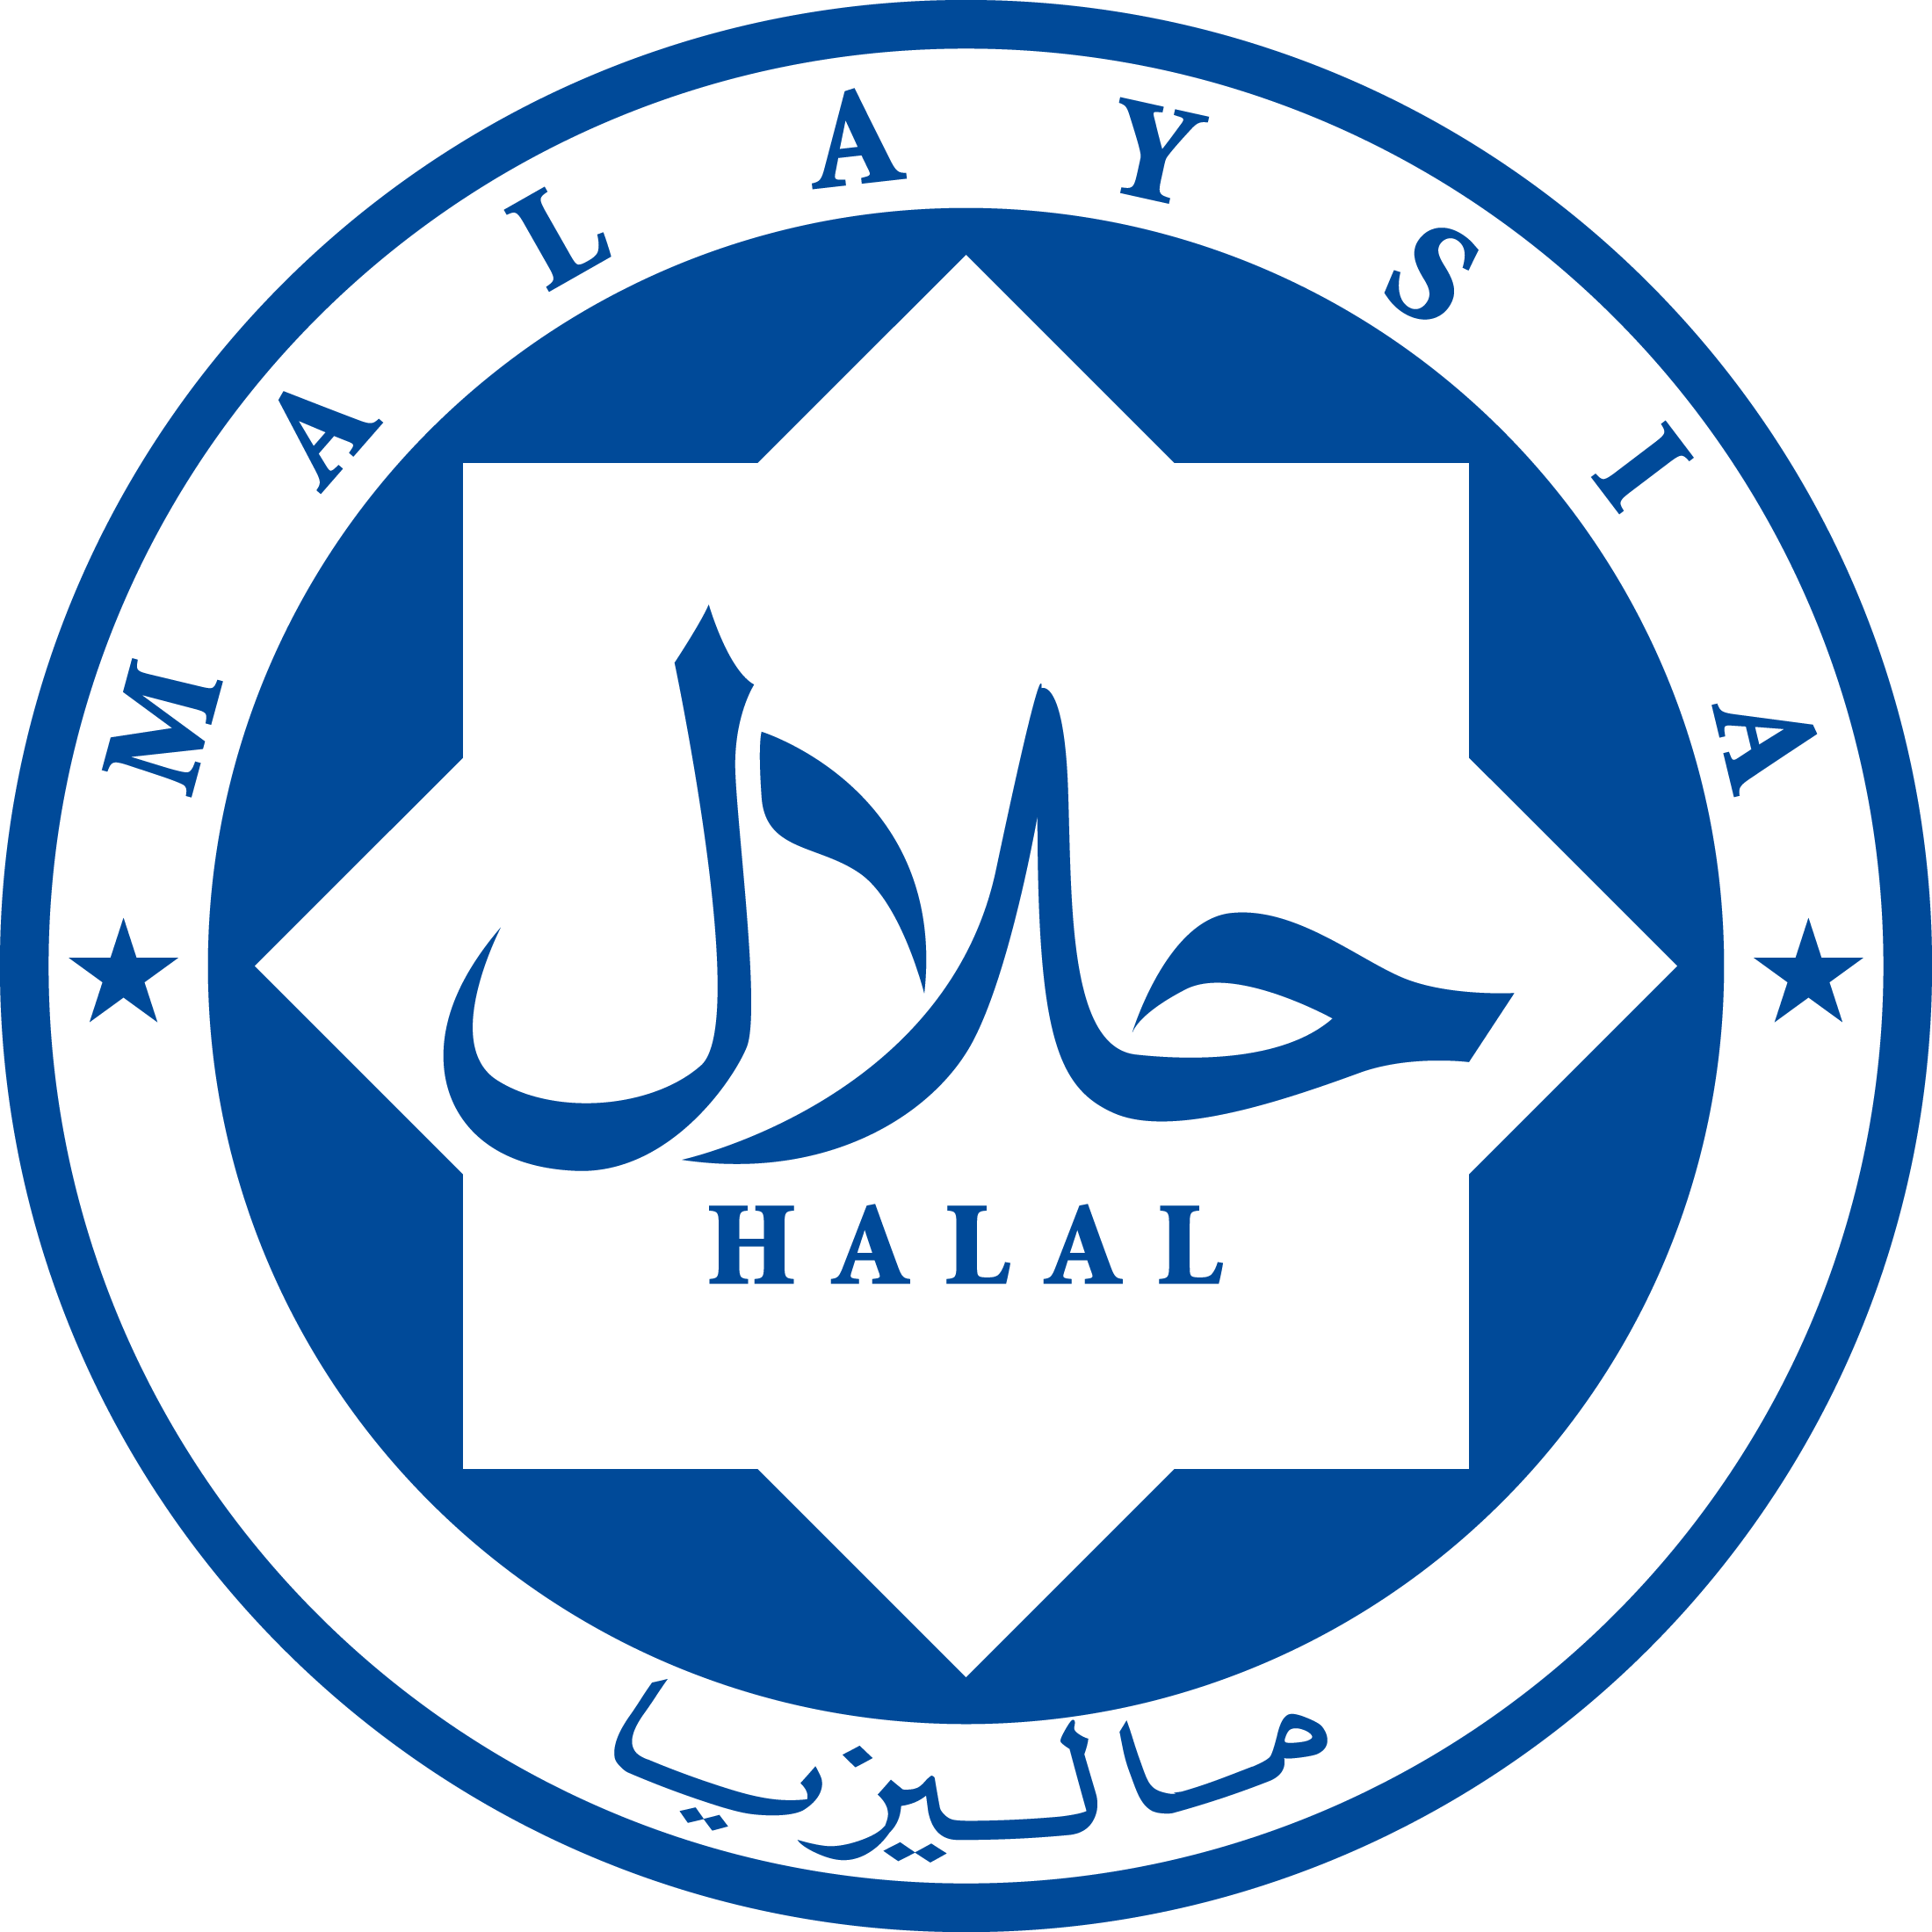 Halal Logo Download Vector.